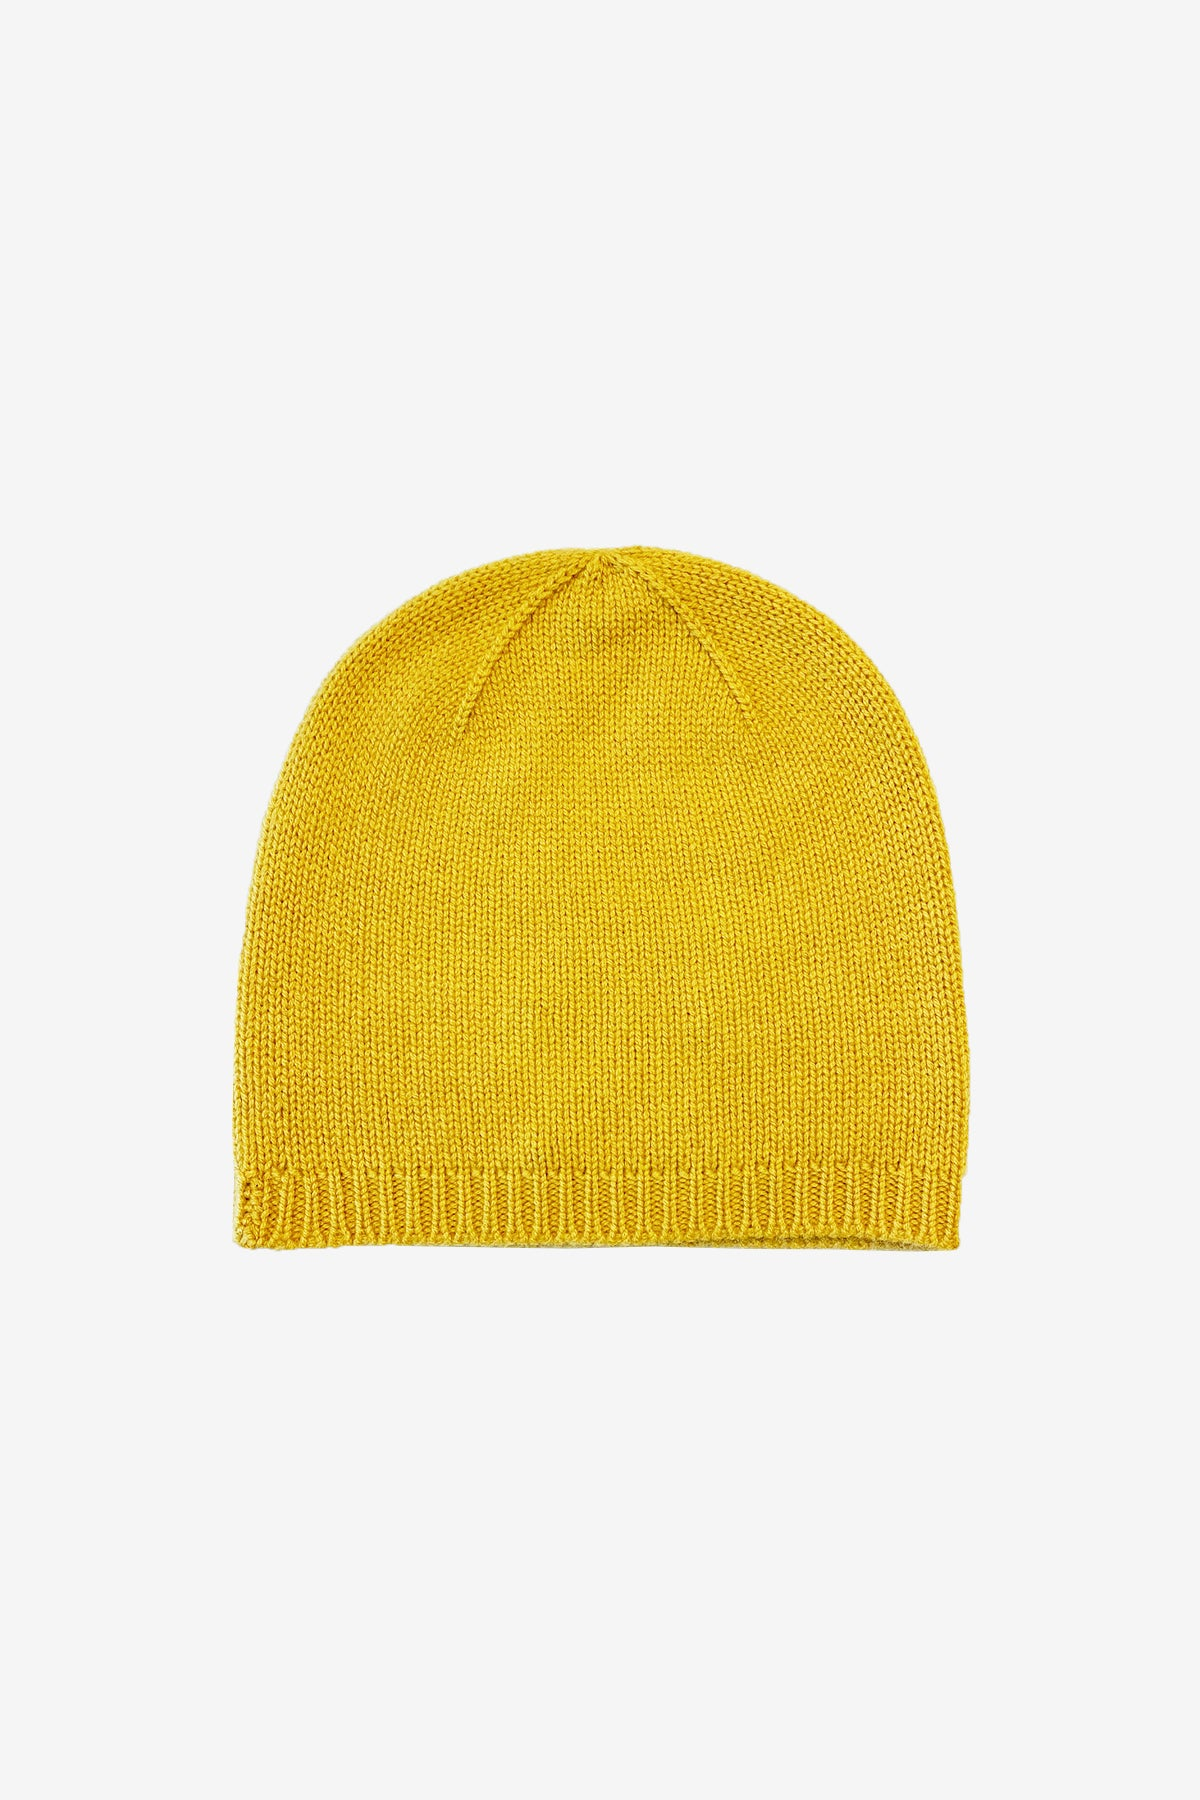 Nao beanie in yellow